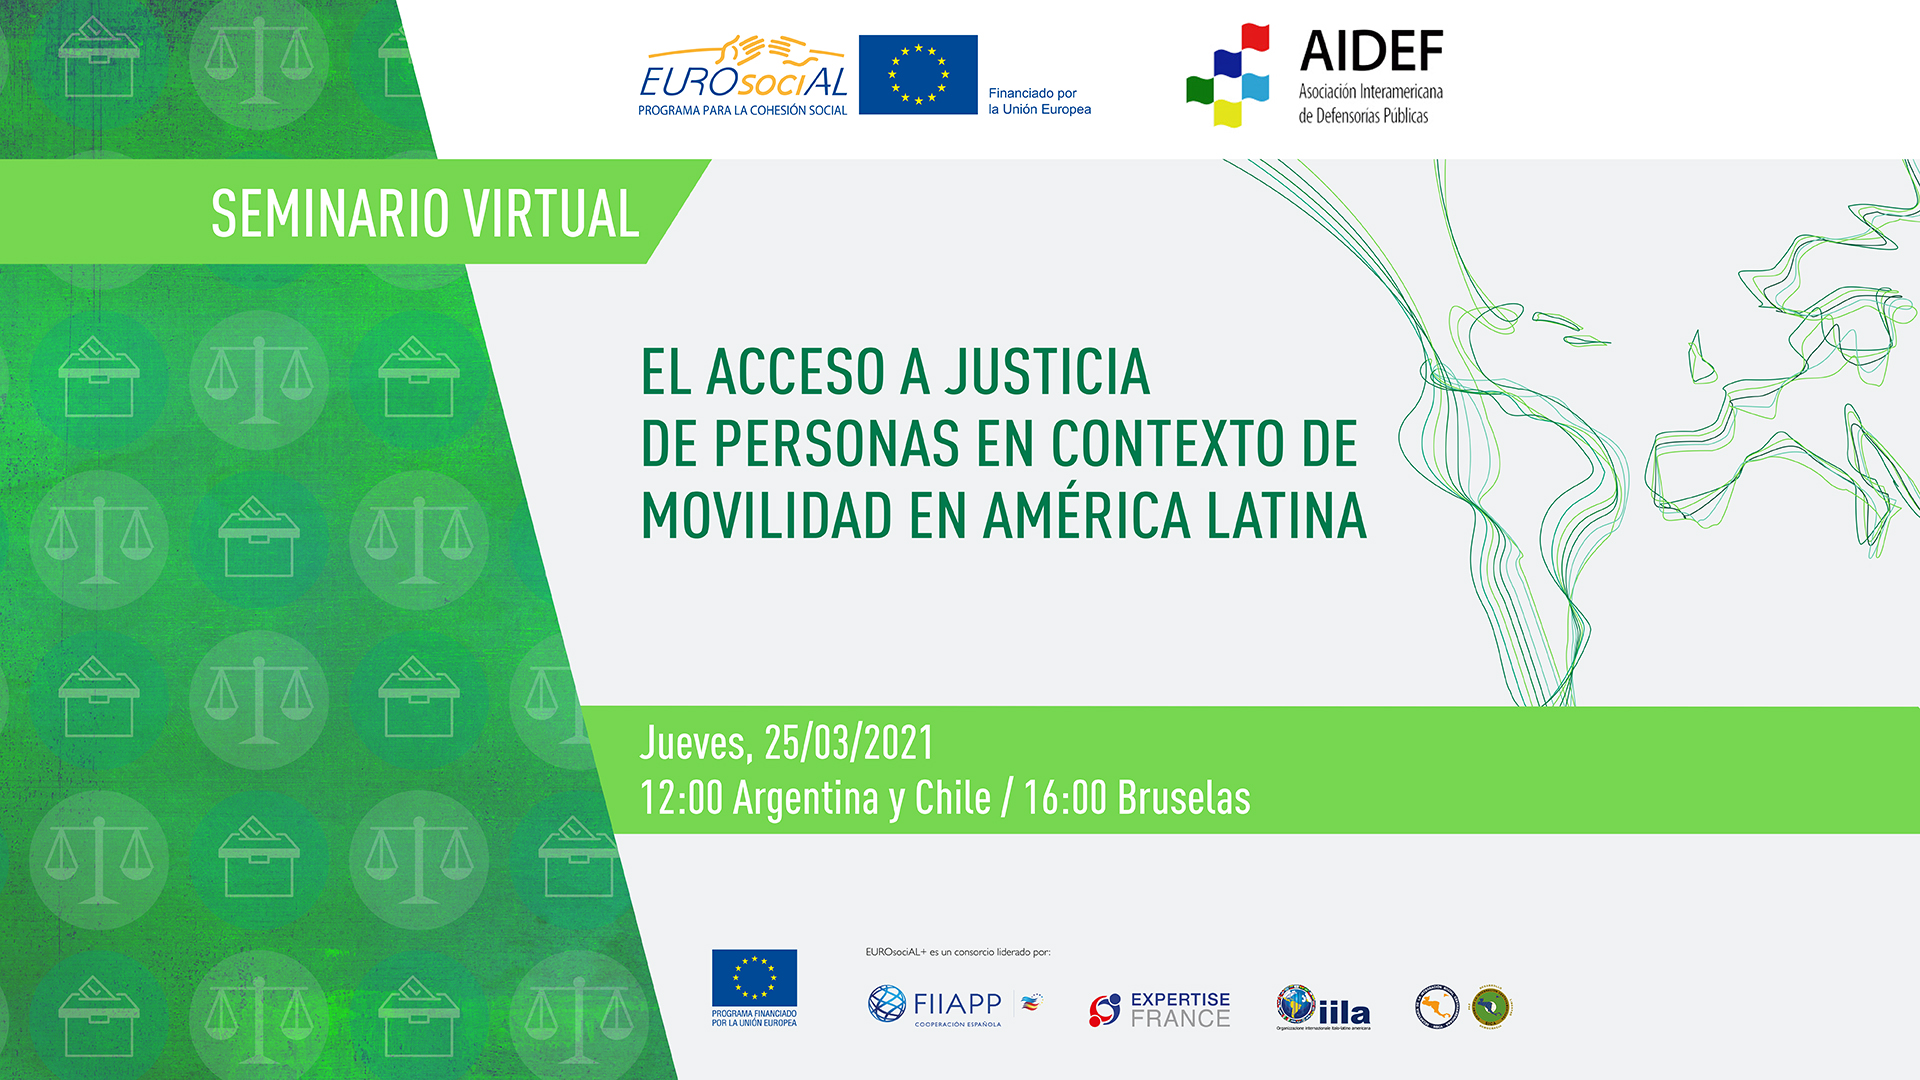 Access to justice for people in contexts where they are on the move in Latin America